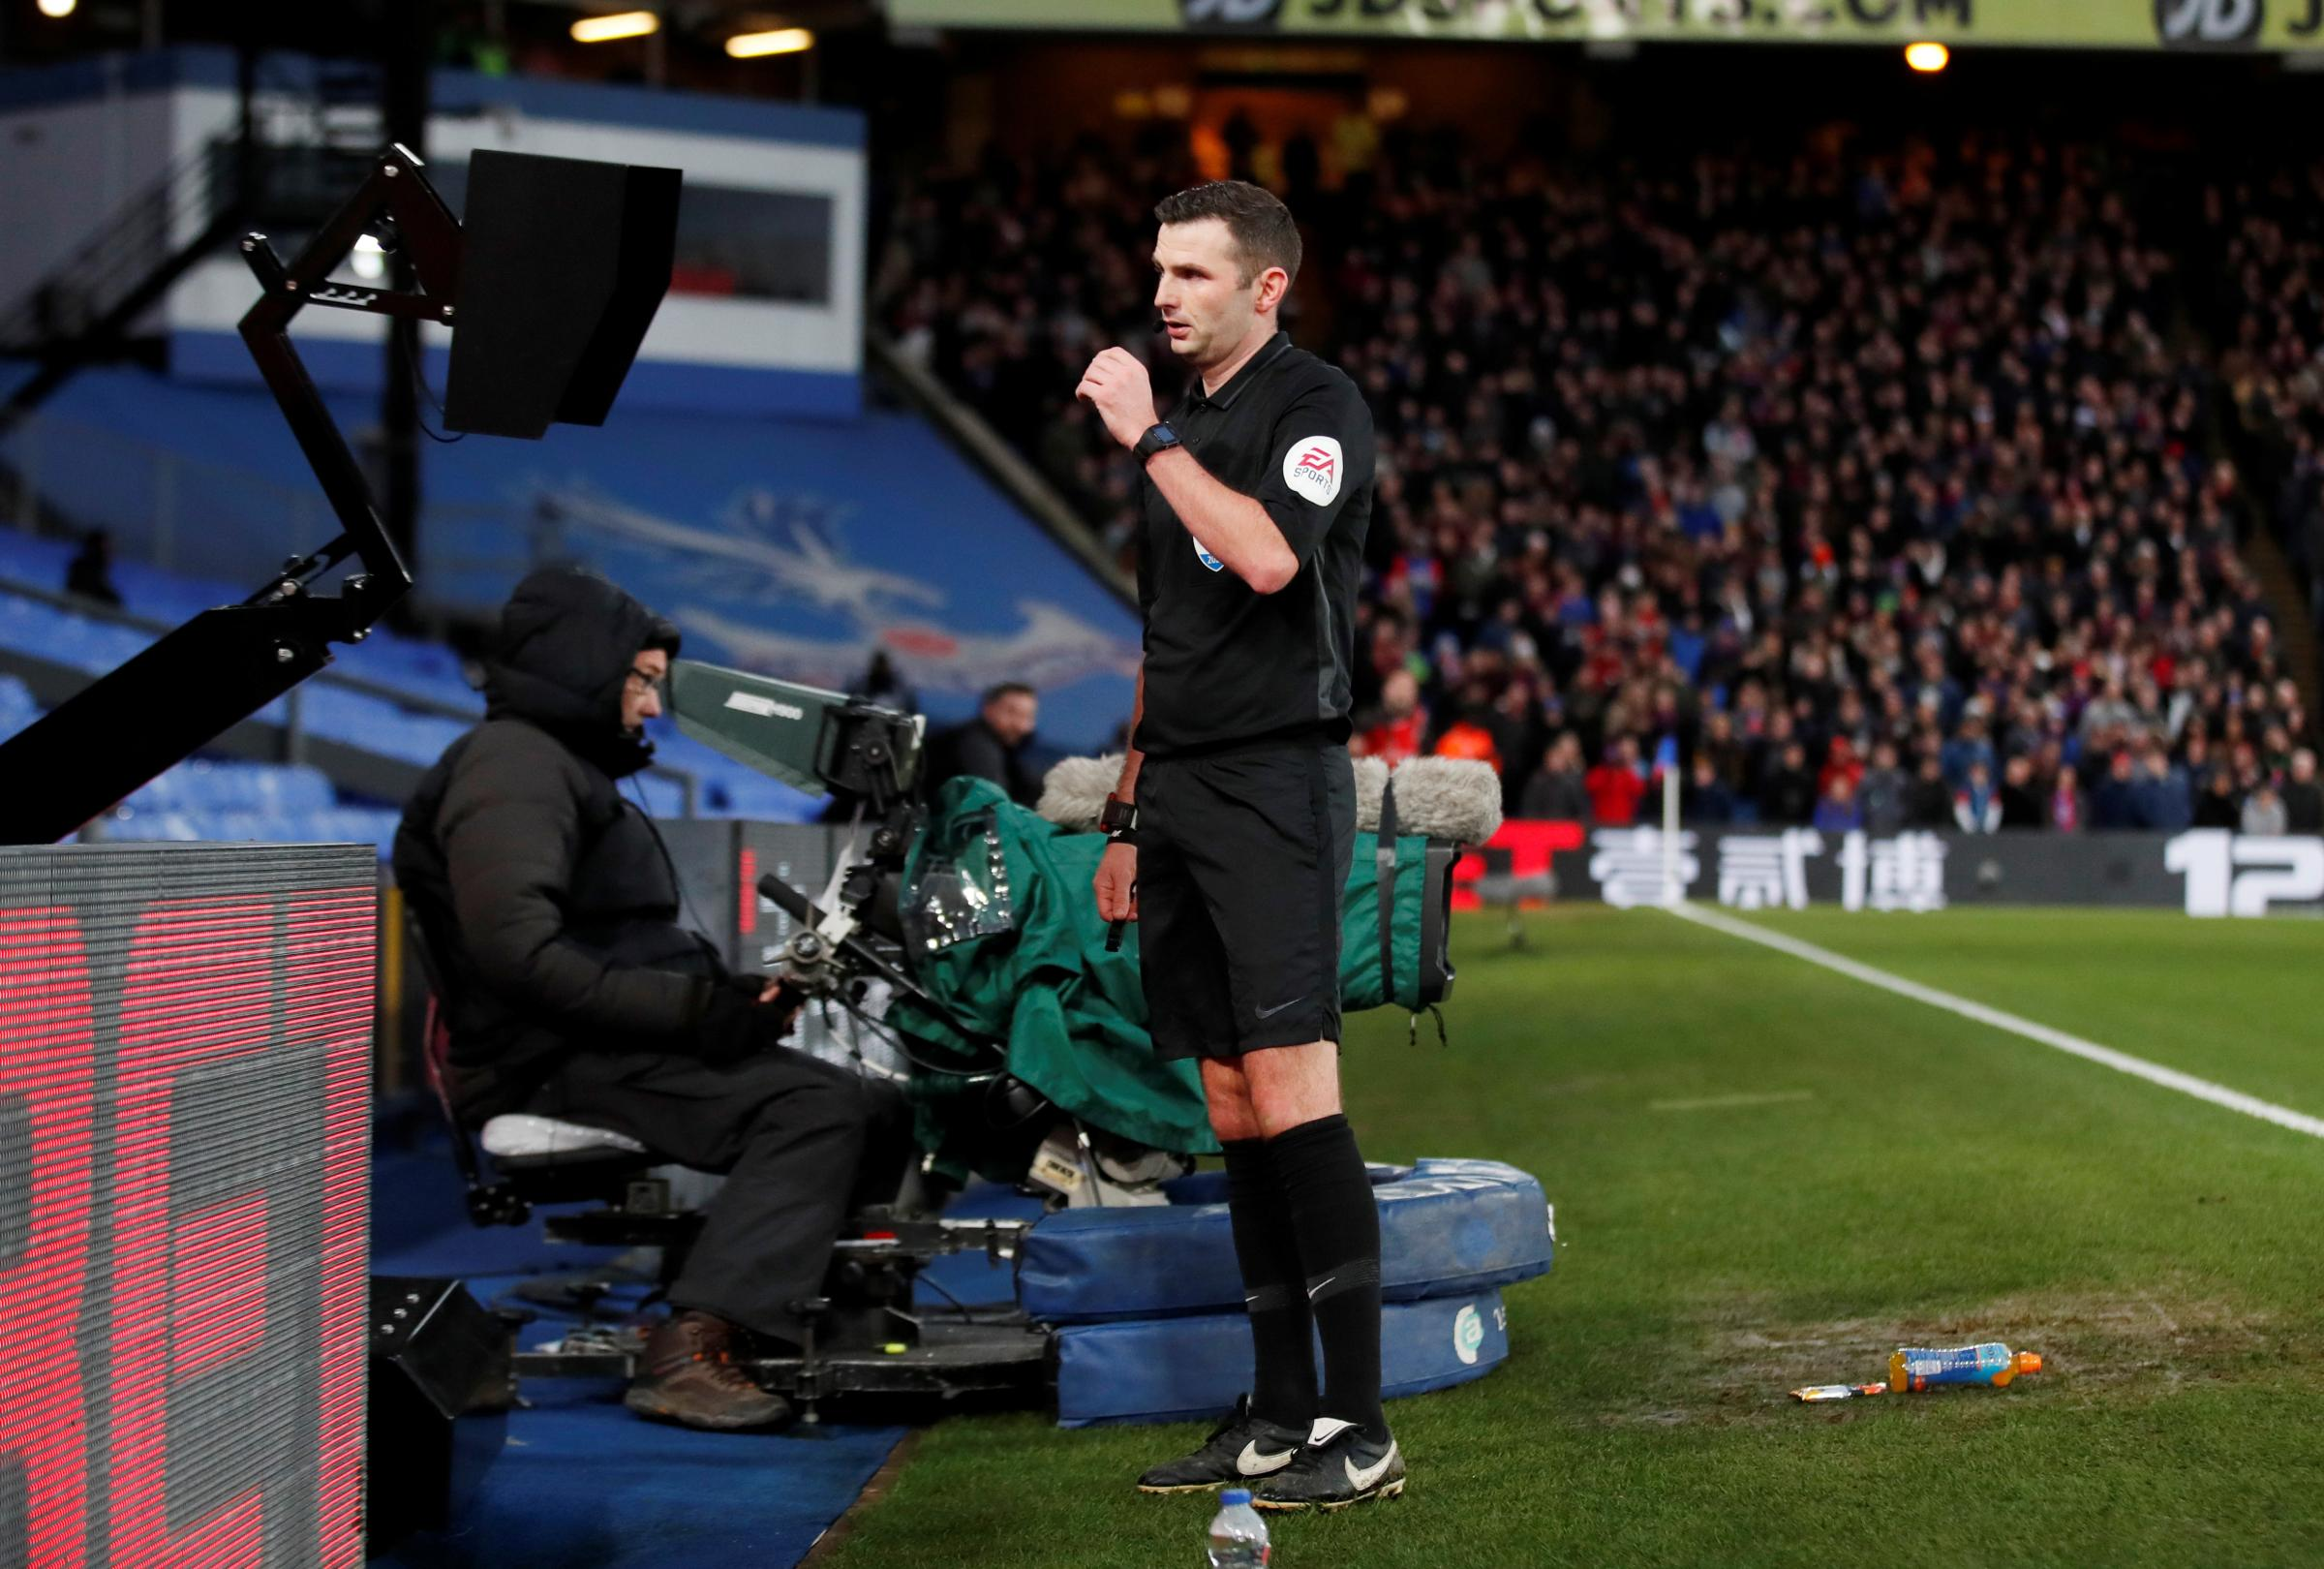 Premier League referees advised to use pitchside monitors for red card decisions